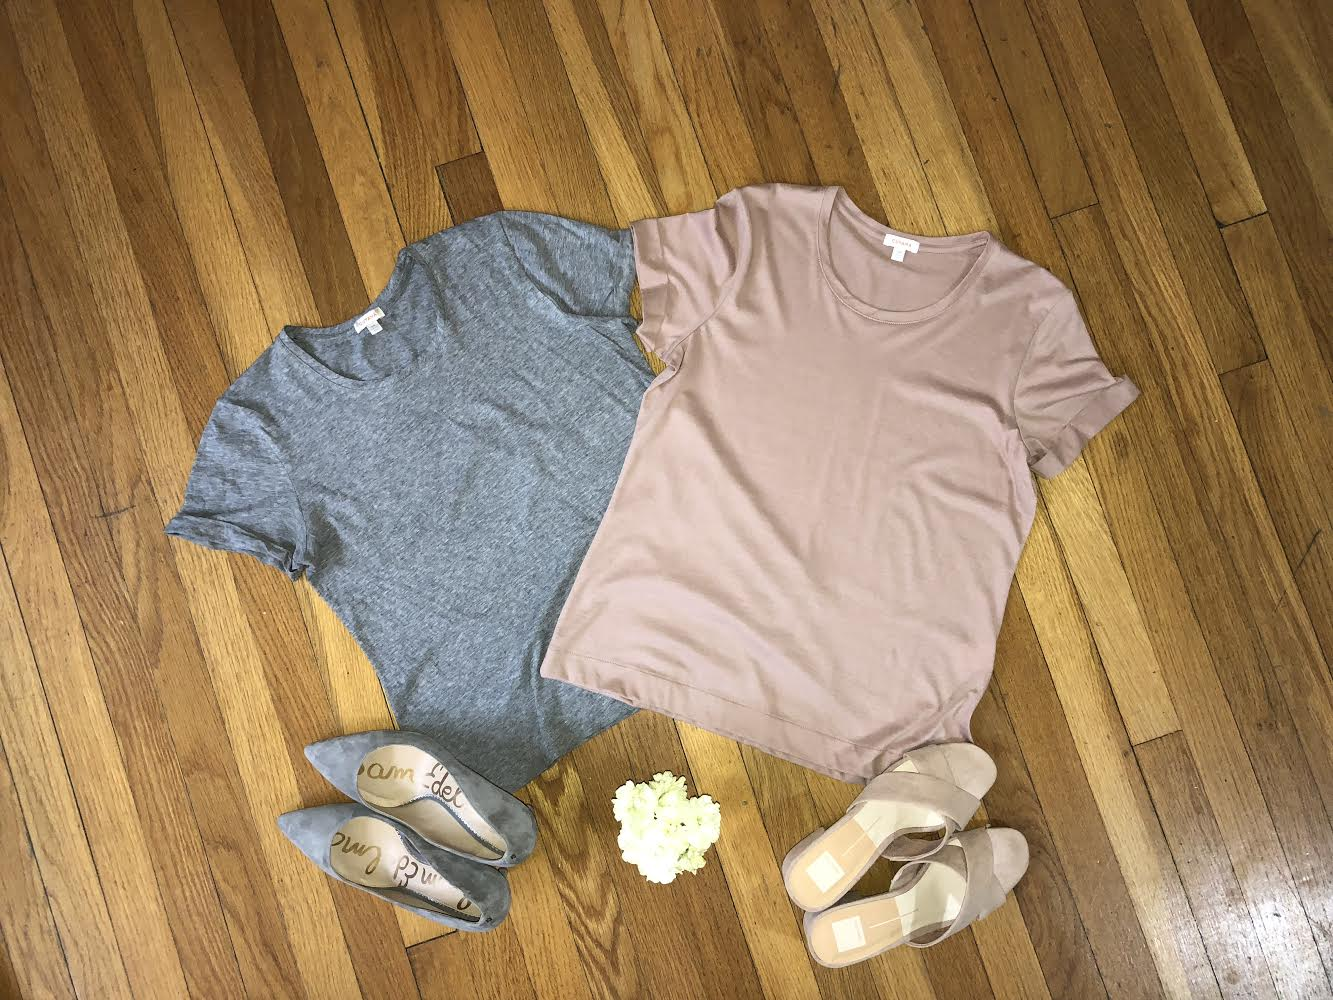 Pima Cotton Classic Crewneck Tee in Heather Gray and Soft Rose